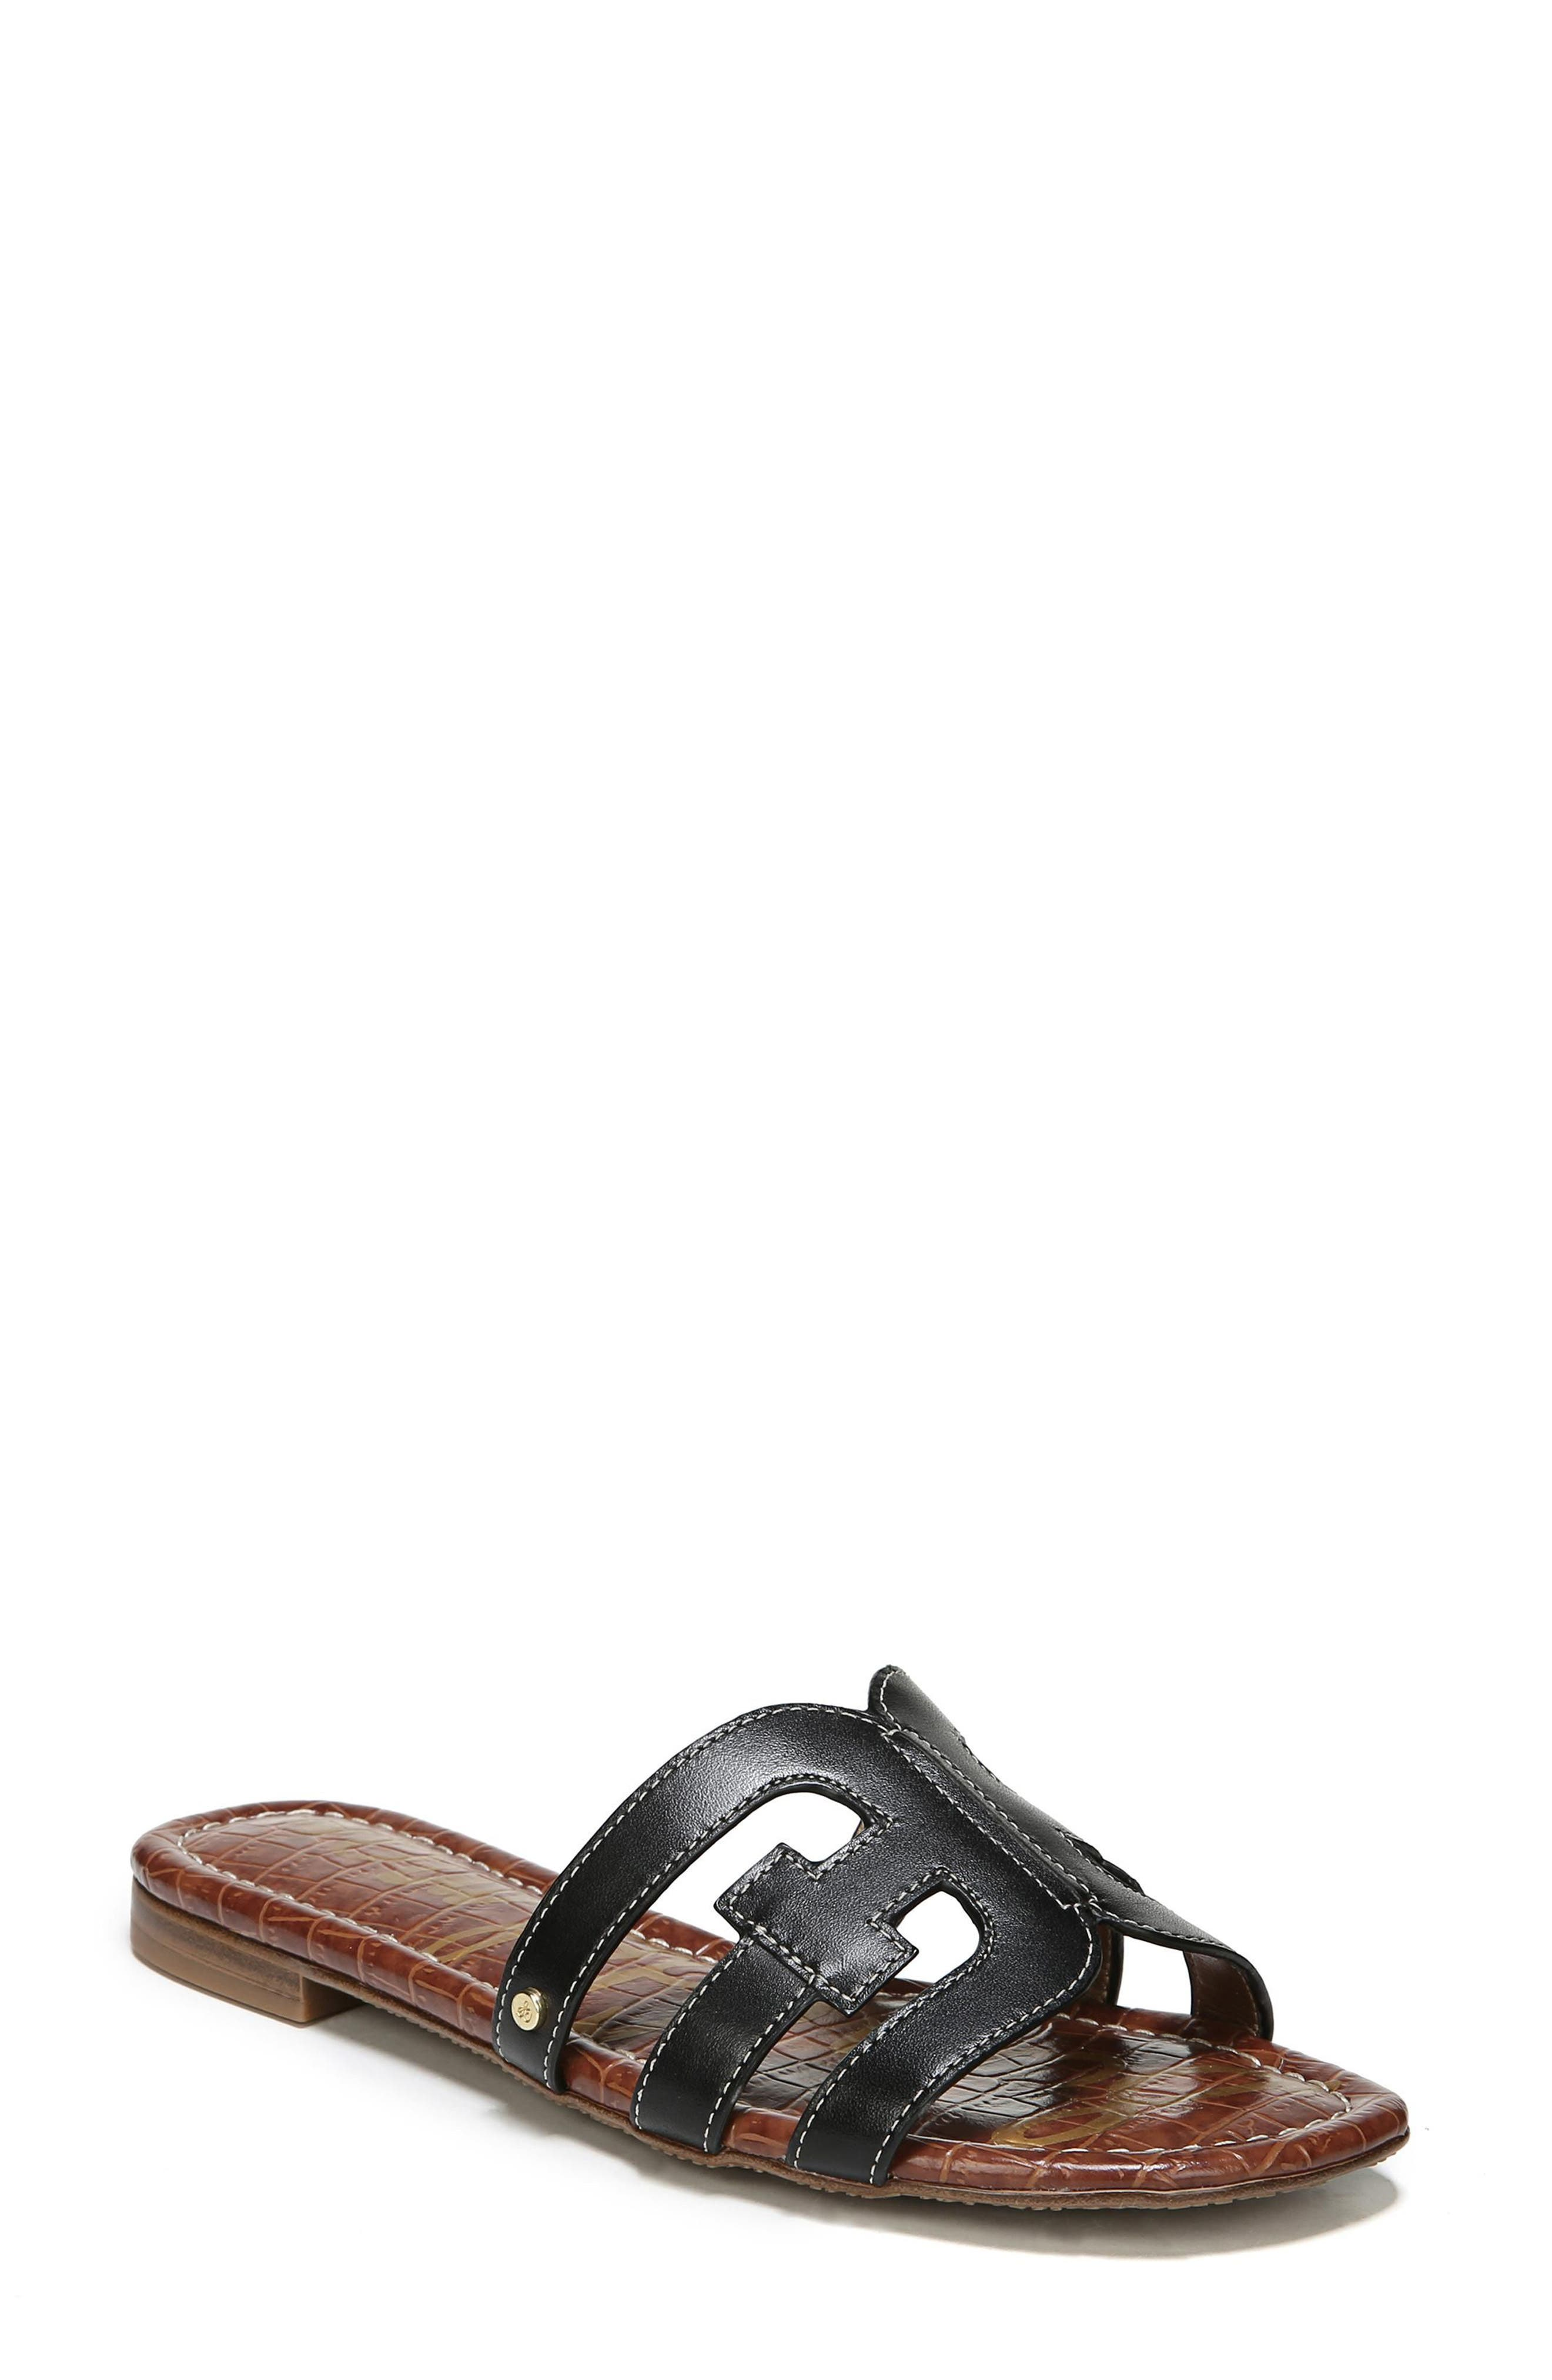 Bay Cutout Slide Sandal,                         Main,                         color, BLACK LEATHER